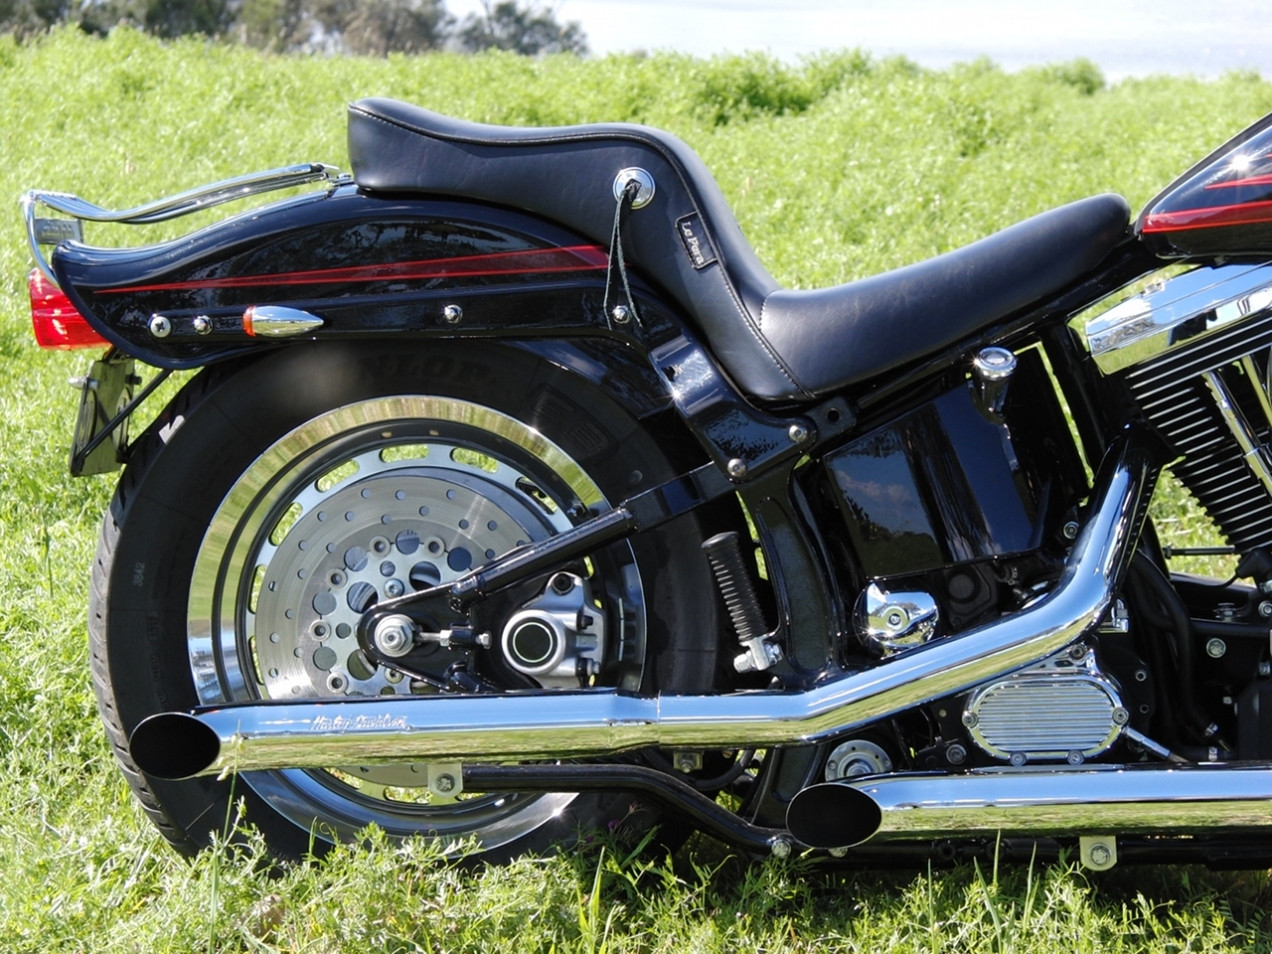 harley-davidson-softail-springer-1995-bad-boy-FXSTSB-evolution-1340-carlini-evil-apehangers-lepera-le-pera-cherokee-seat-jeremiah-watt-slotted-concho-joker-machine-mirrors-psalmistice_CIMG2831